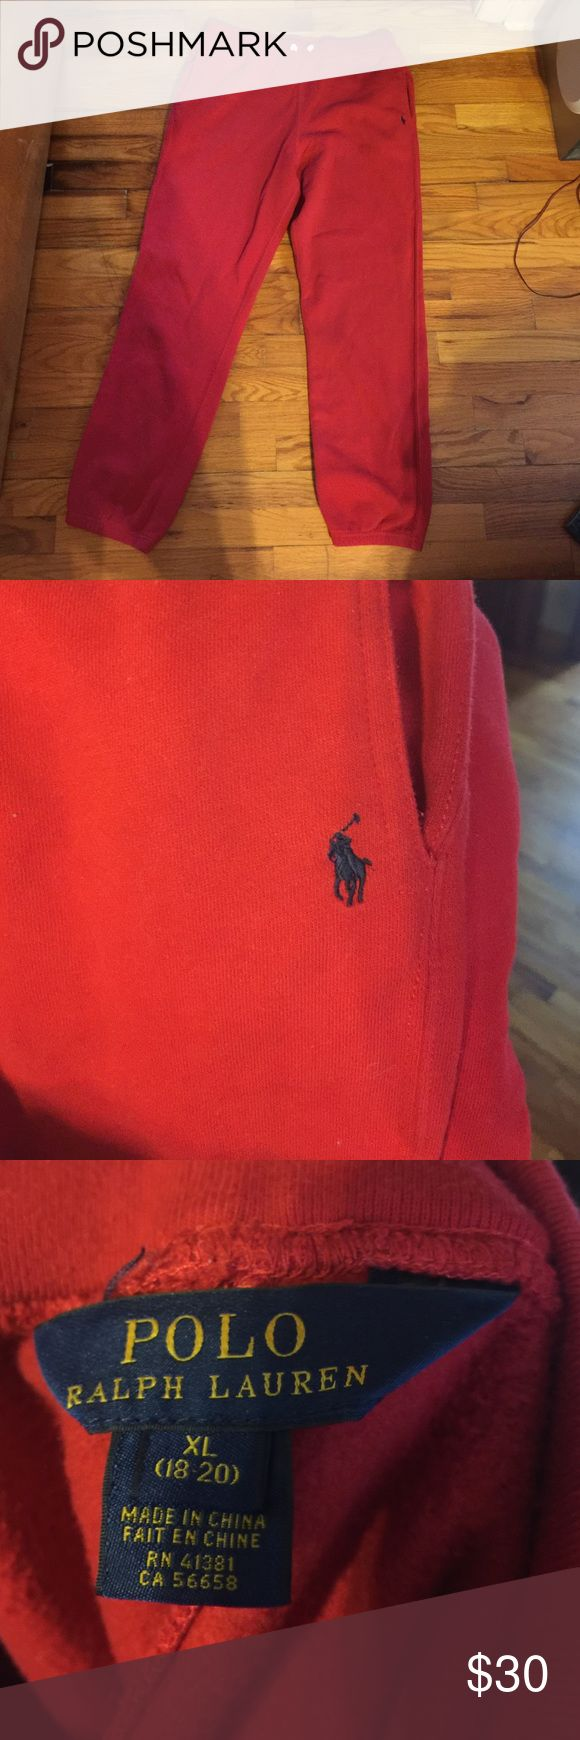 Polo sweatpants 😊 Ralph Lauren red sweatpants , teens 18-20, adult (woman) s-m ...worn once , washed once ...perfect for fall 🍃🍂 Polo by Ralph Lauren Pants Track Pants & Joggers